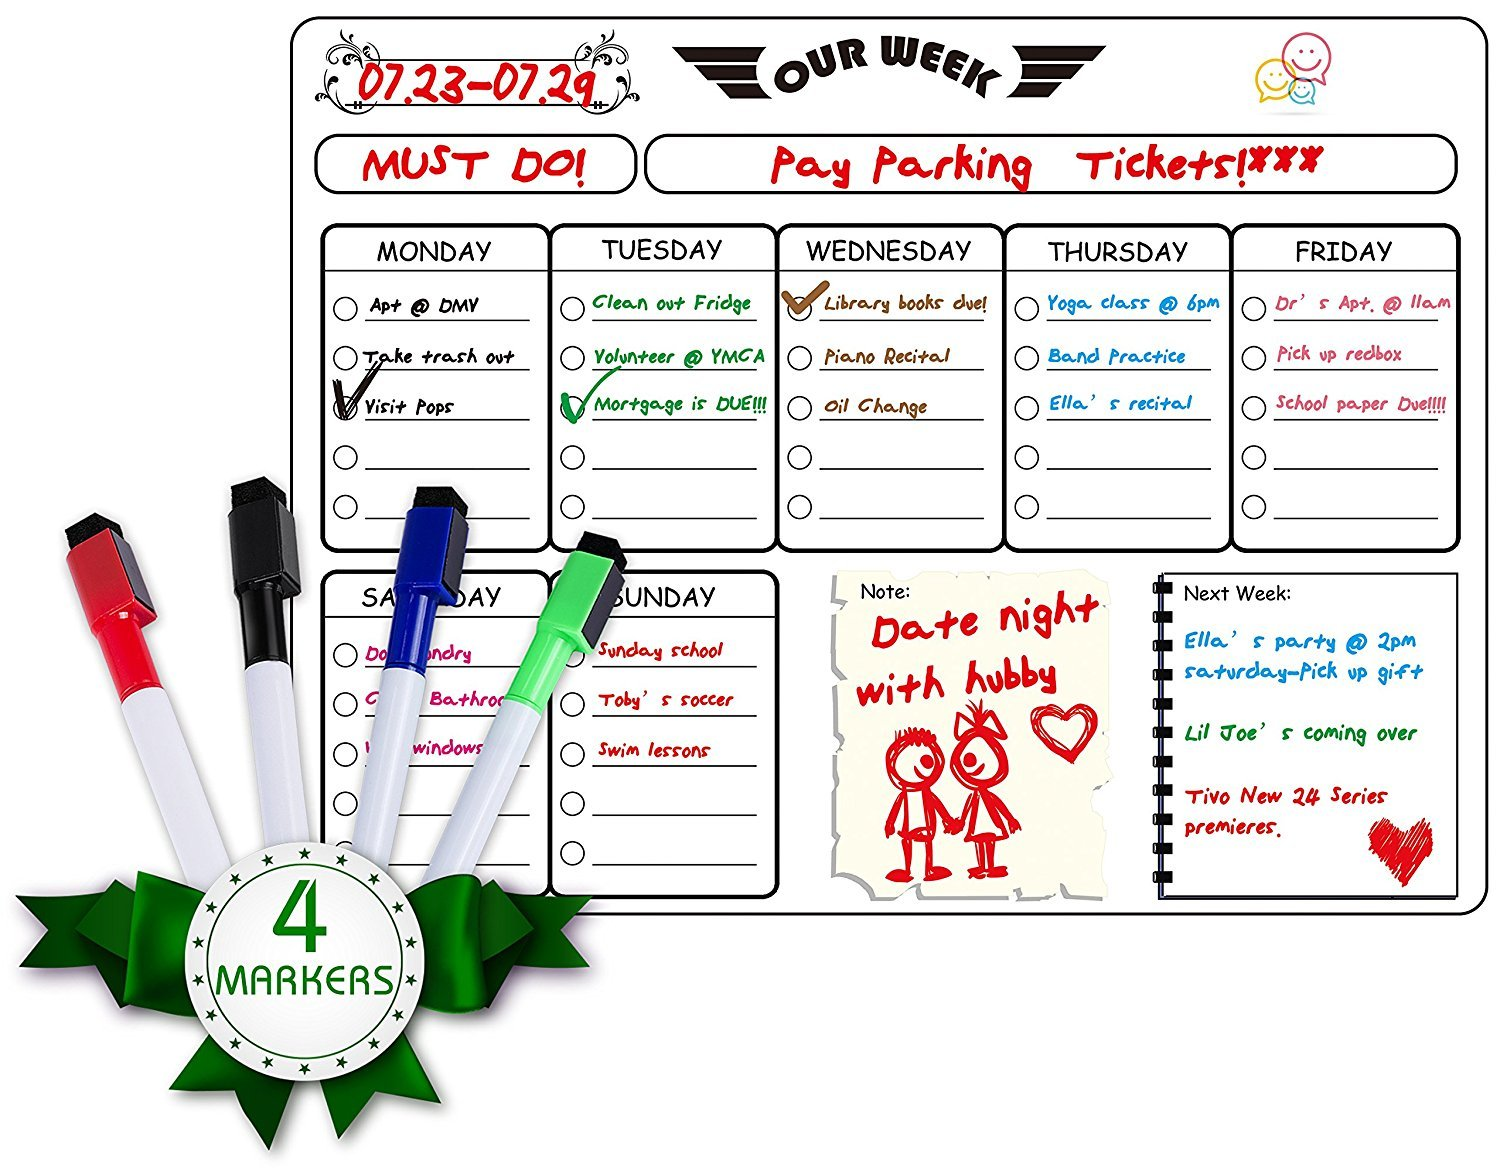 Besource Weekly Whiteboard Calendar Planner Magnetic Refrigerator Dry Erase Weekly Planner Message Board with 4 Magnetic Dry Erase Markers 16''X12''